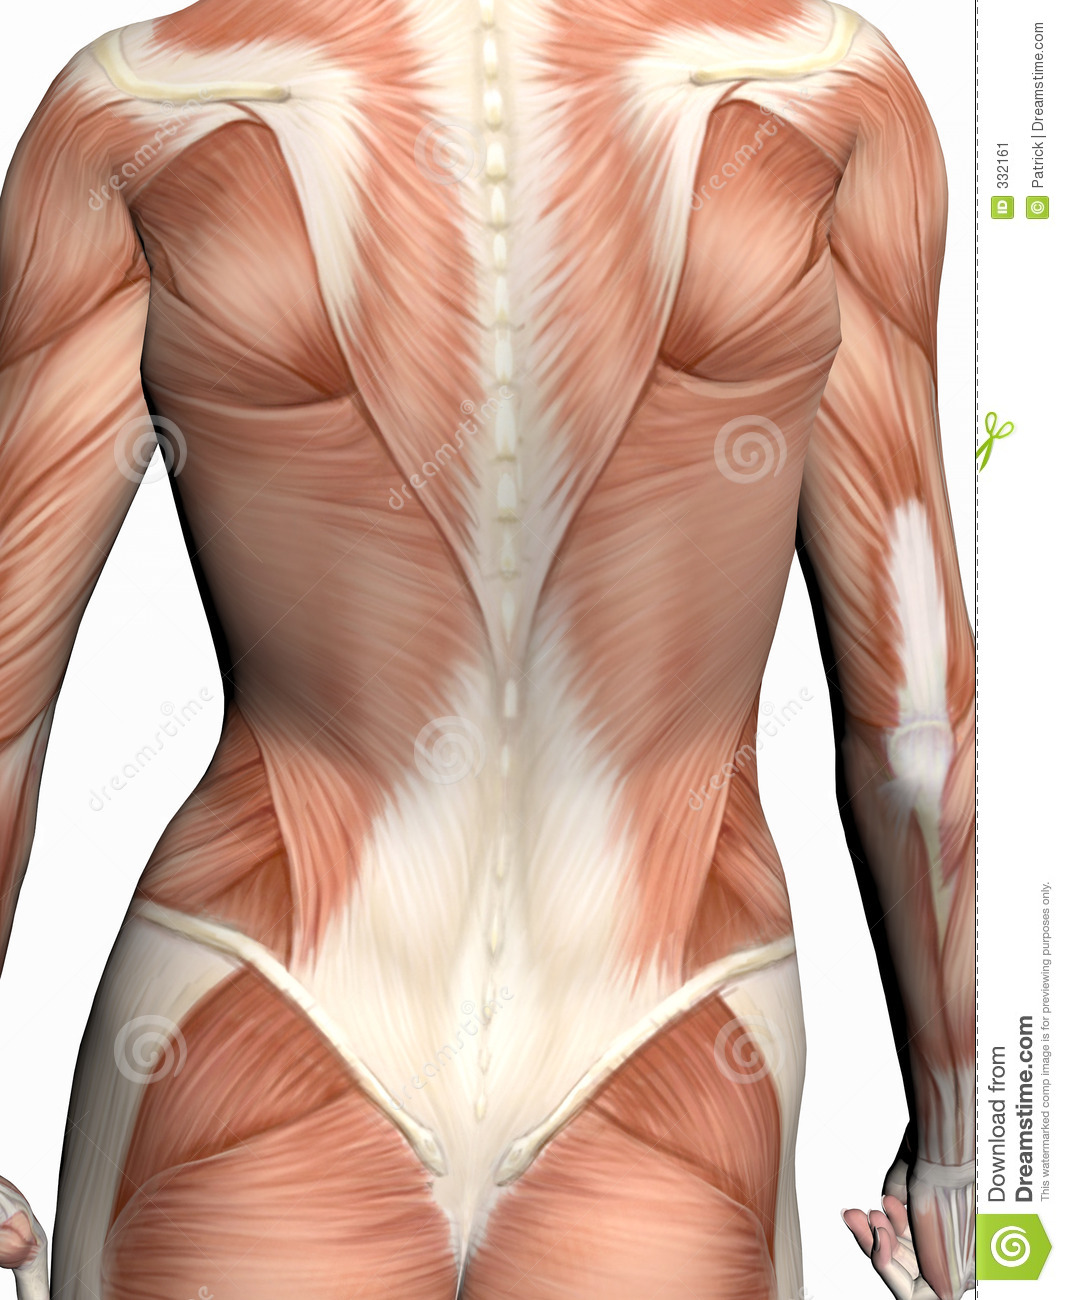 Anatomy of a woman. stock illustration. Illustration of chest - 332161